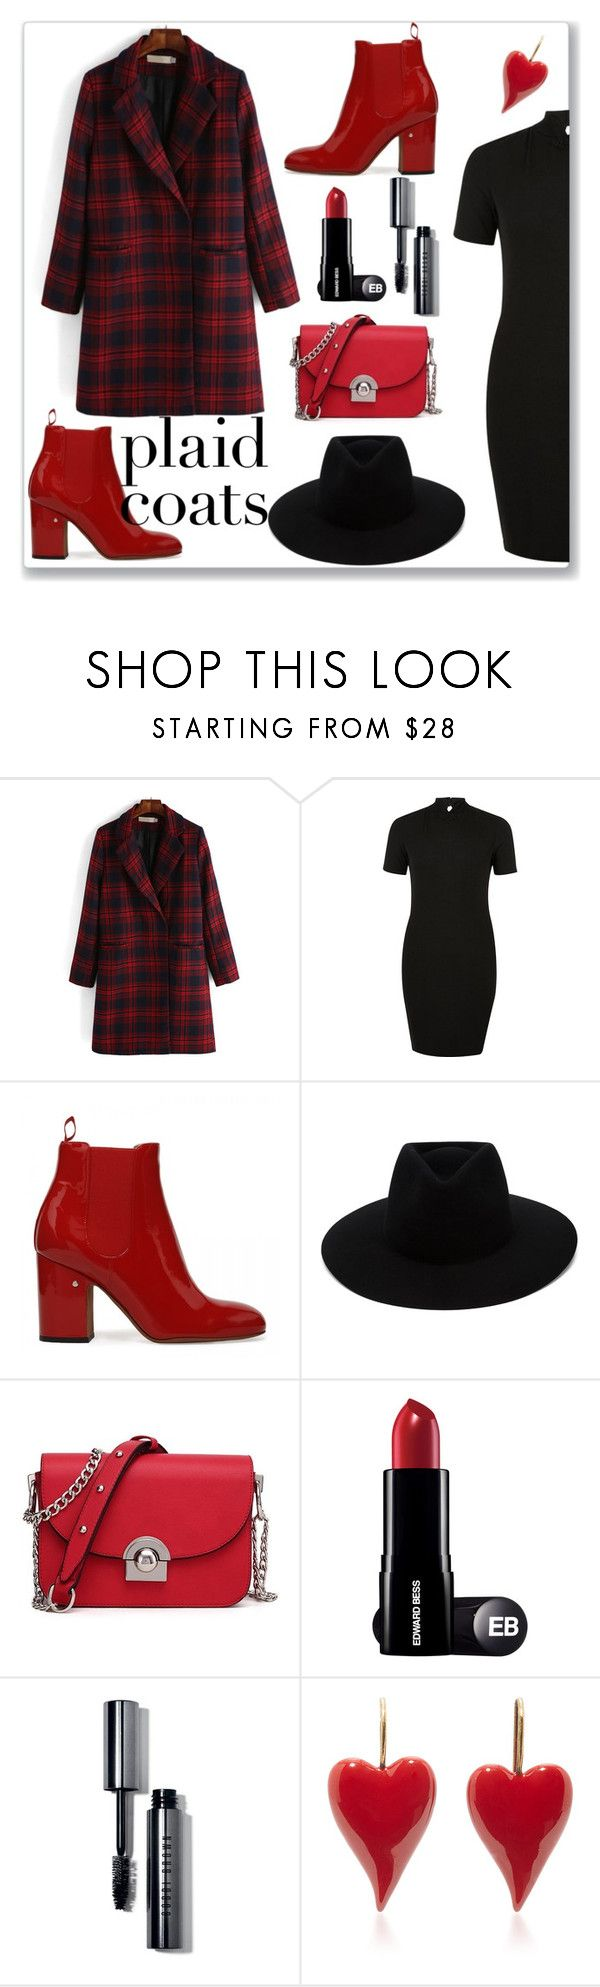 """""""Autumn chic"""" by lynksmichelle ❤ liked on Polyvore featuring River Island, rag & bone and Bobbi Brown Cosmetics"""